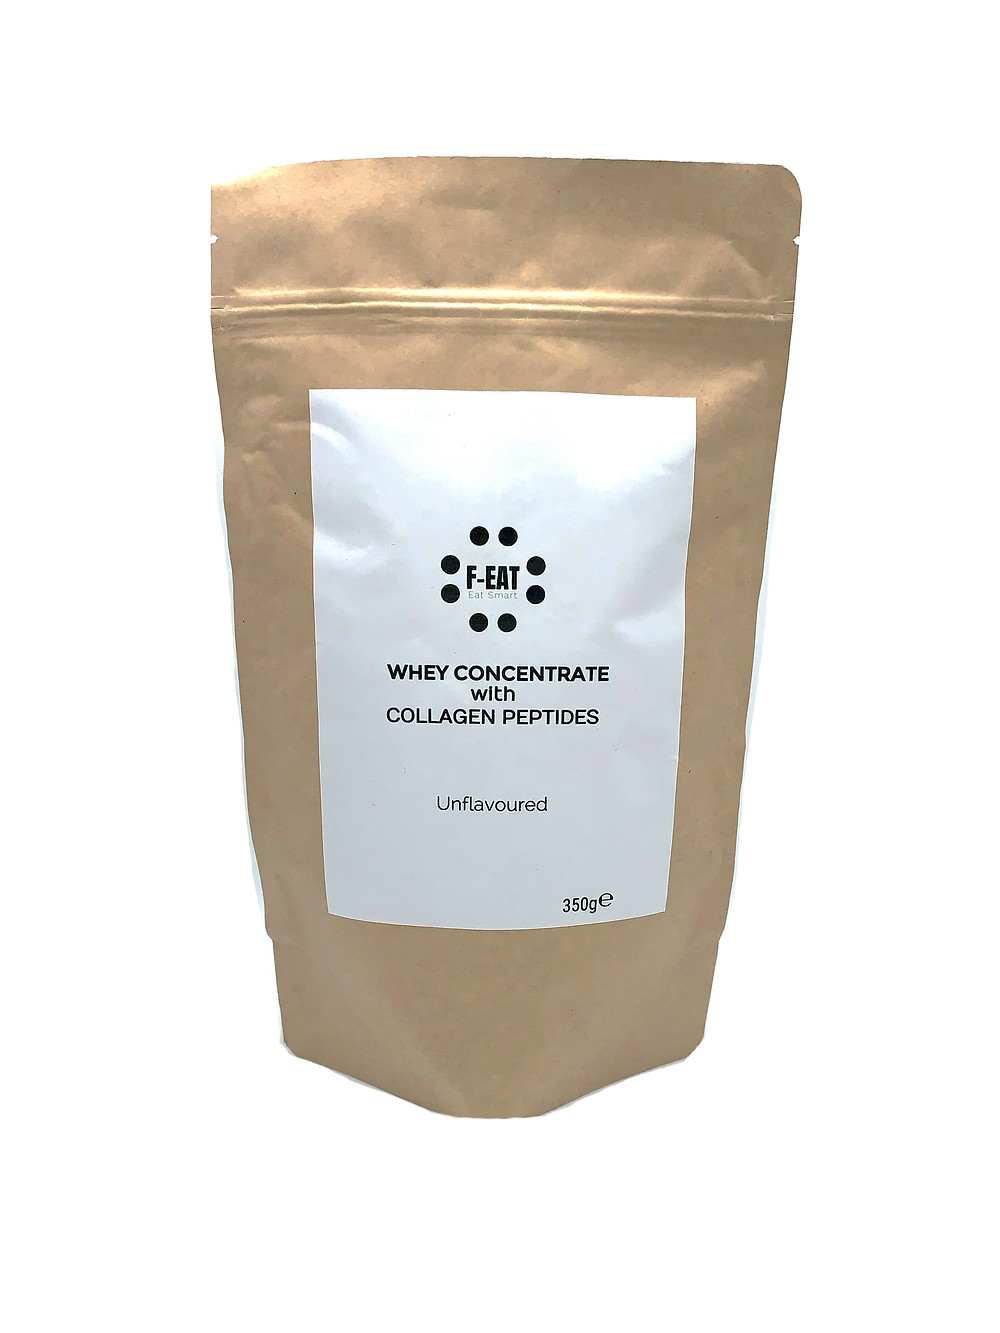 Unflavoured protein powder for all uses. Supports joints, skin, hair and nails health!